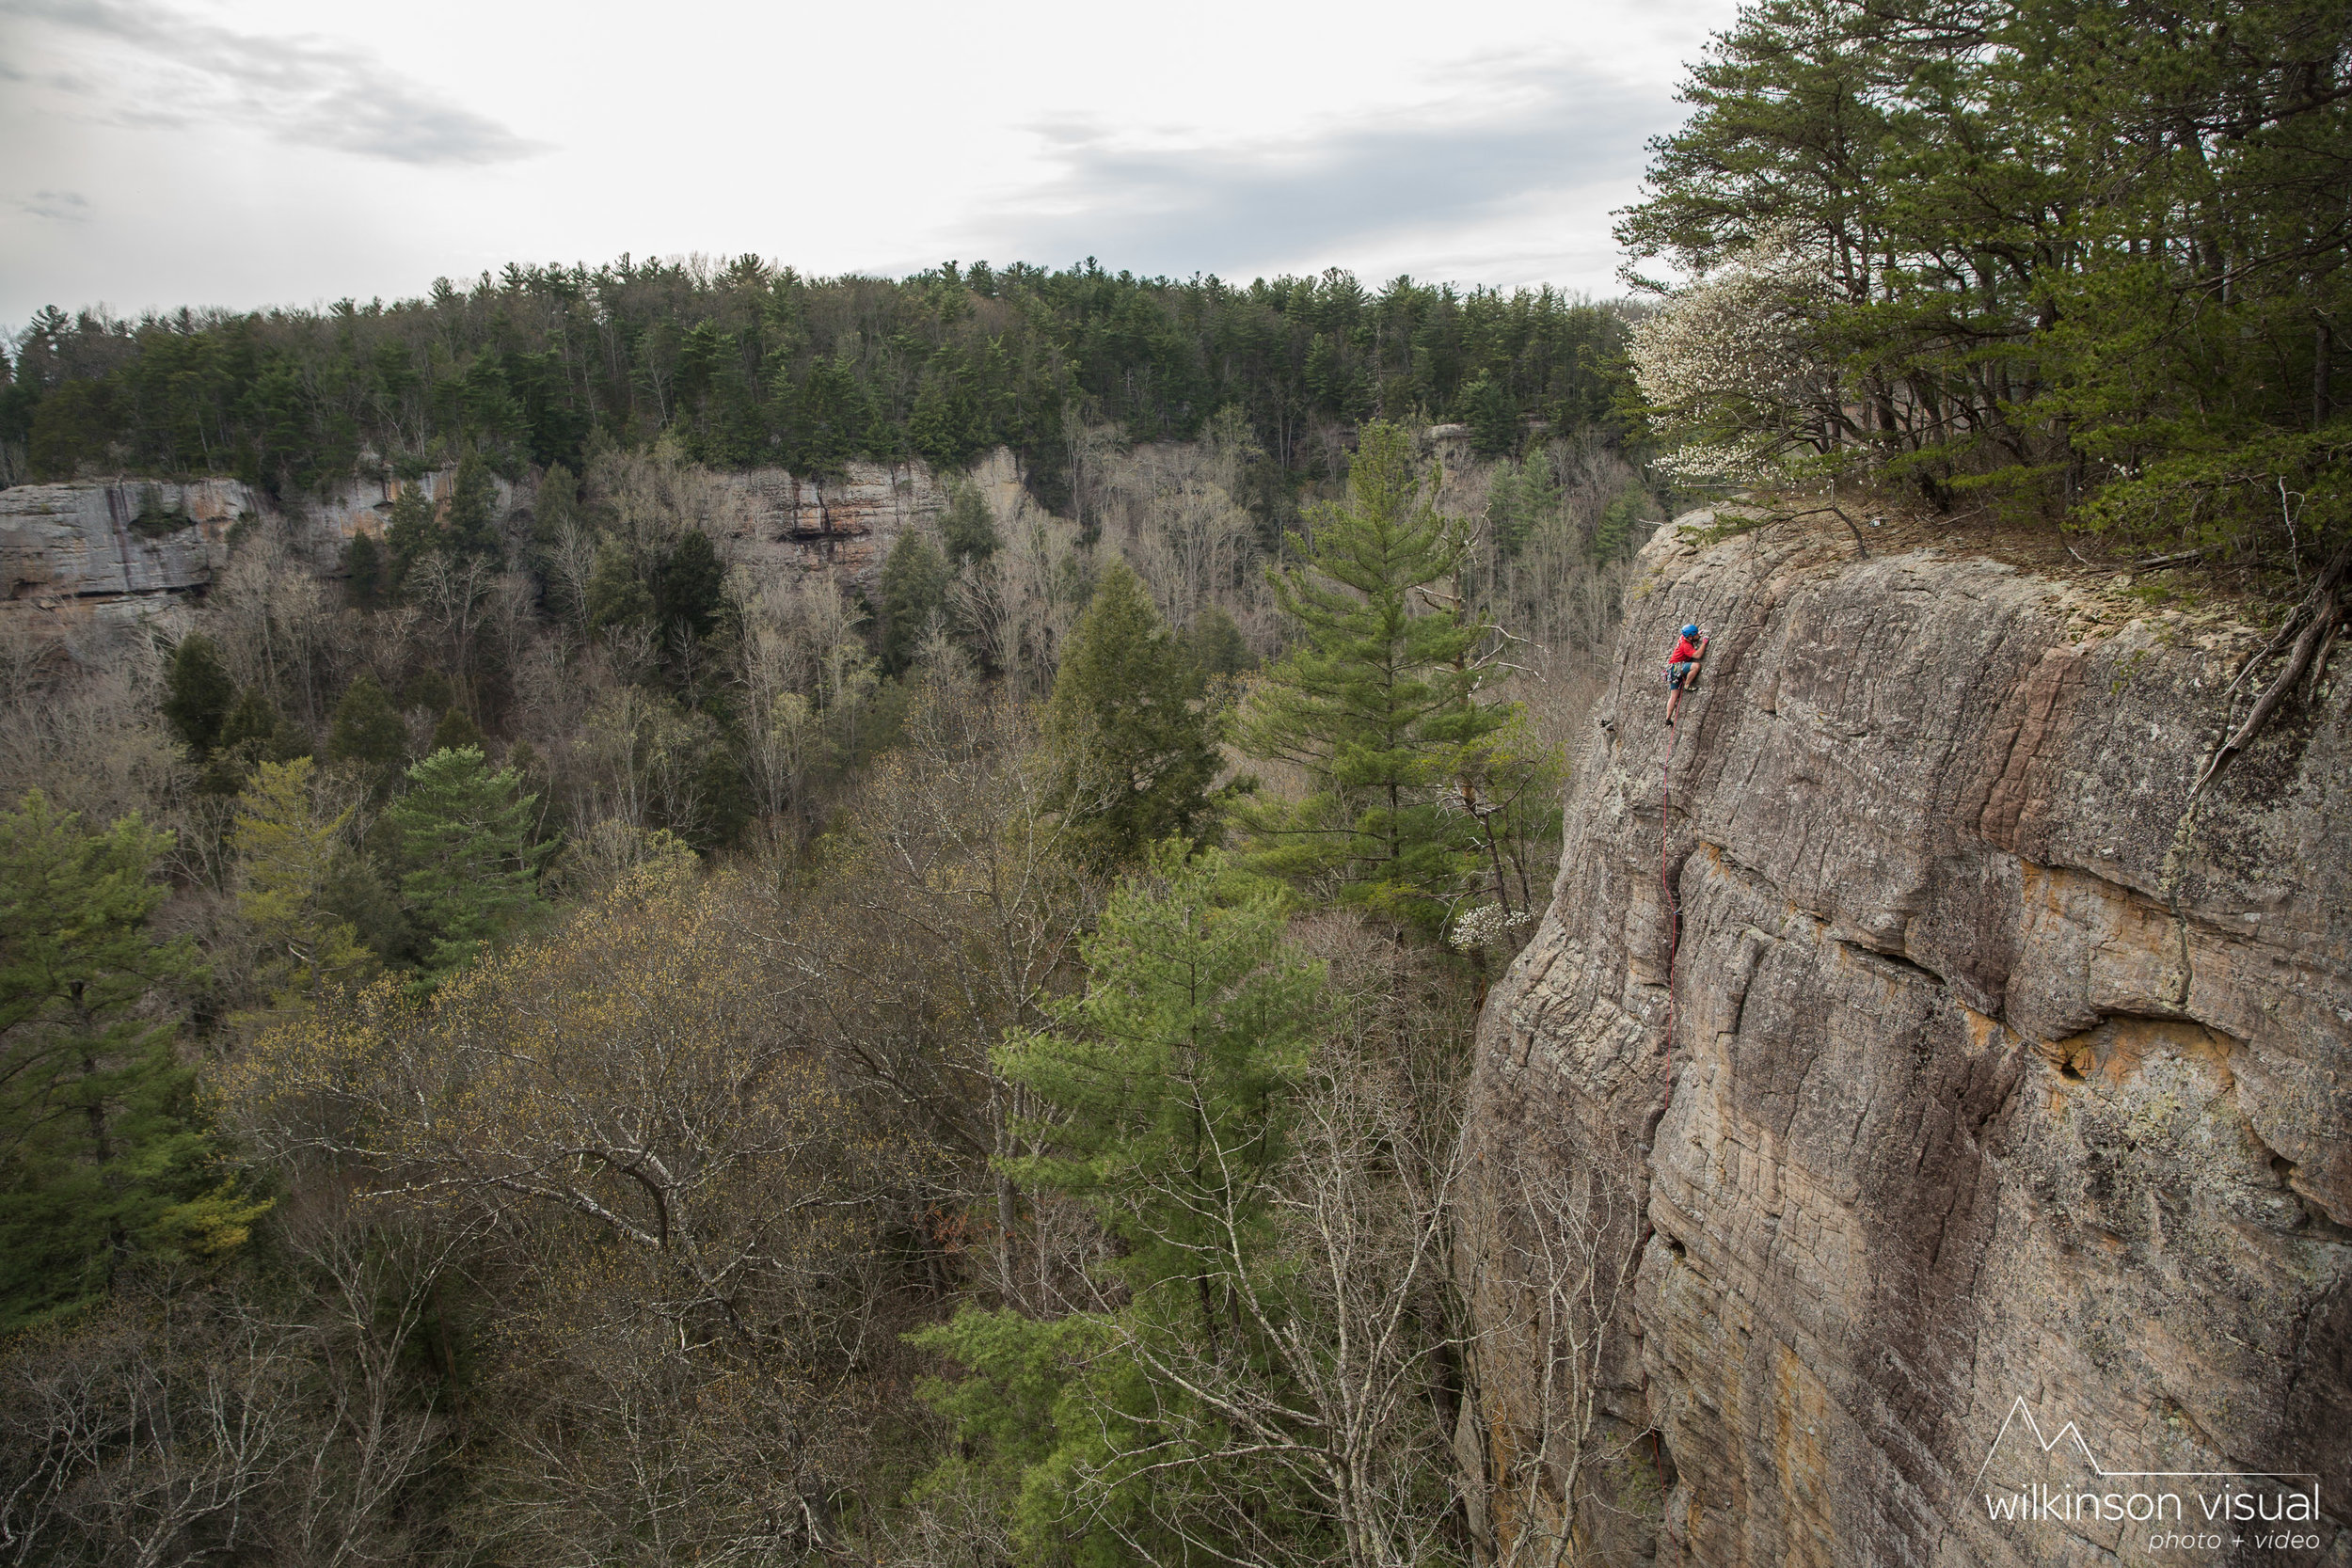 A climber nearing the top of a first ascent not far from Kentucky's Red River Gorge.